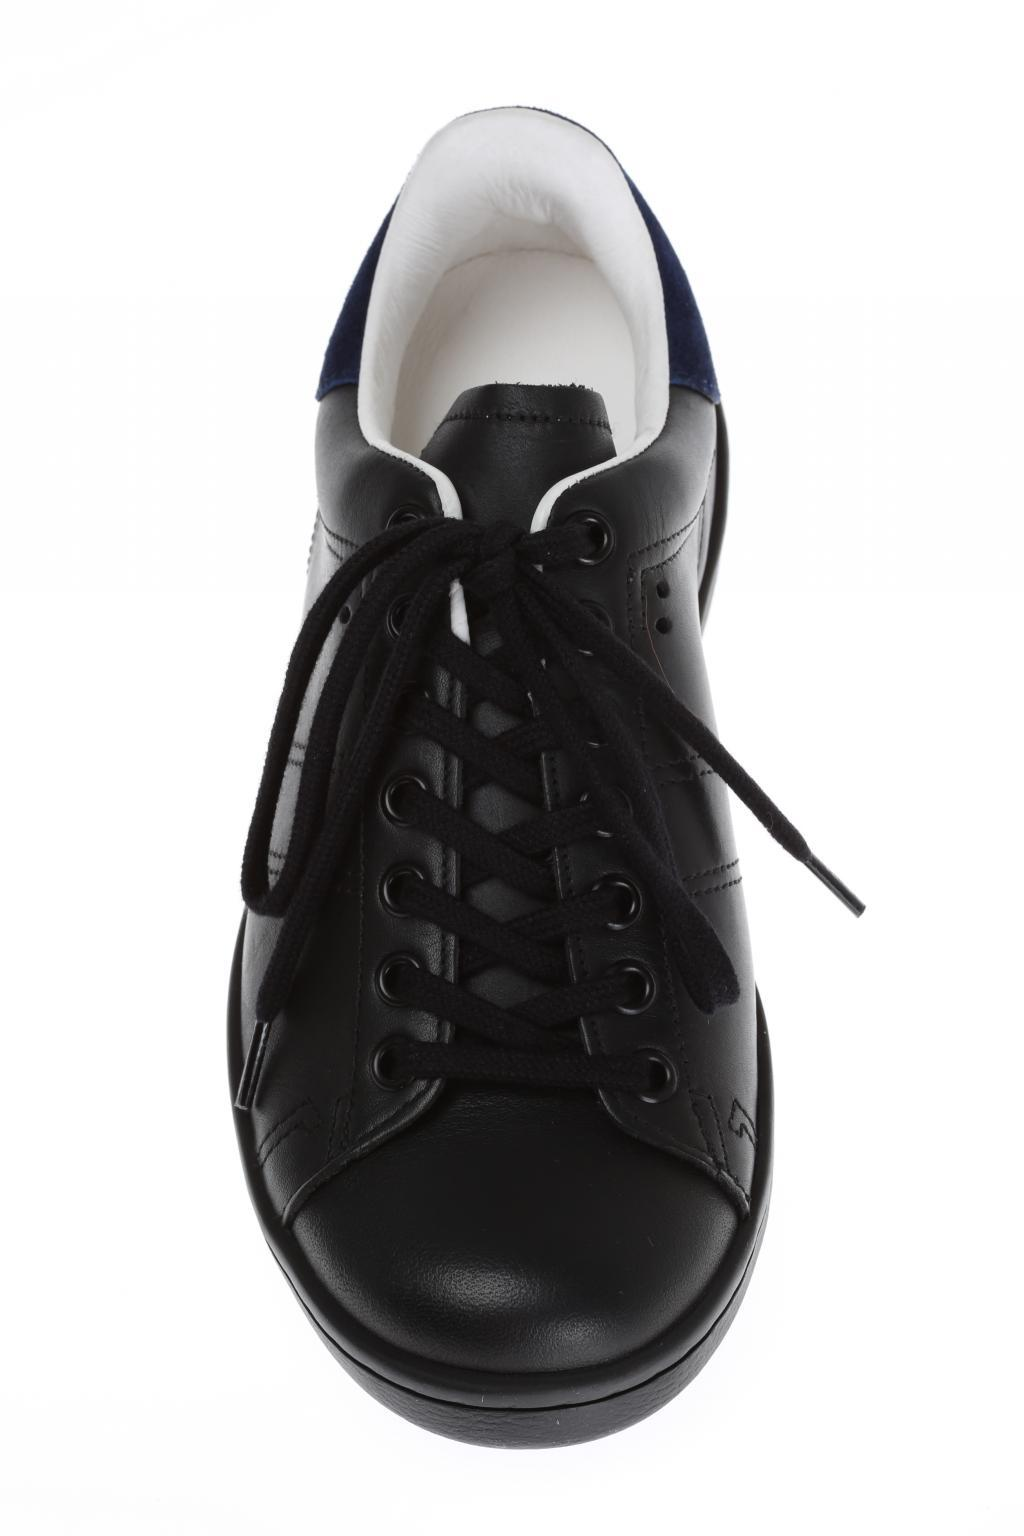 Étoile Isabel Marant Leather 'bart' Sneakers in Black